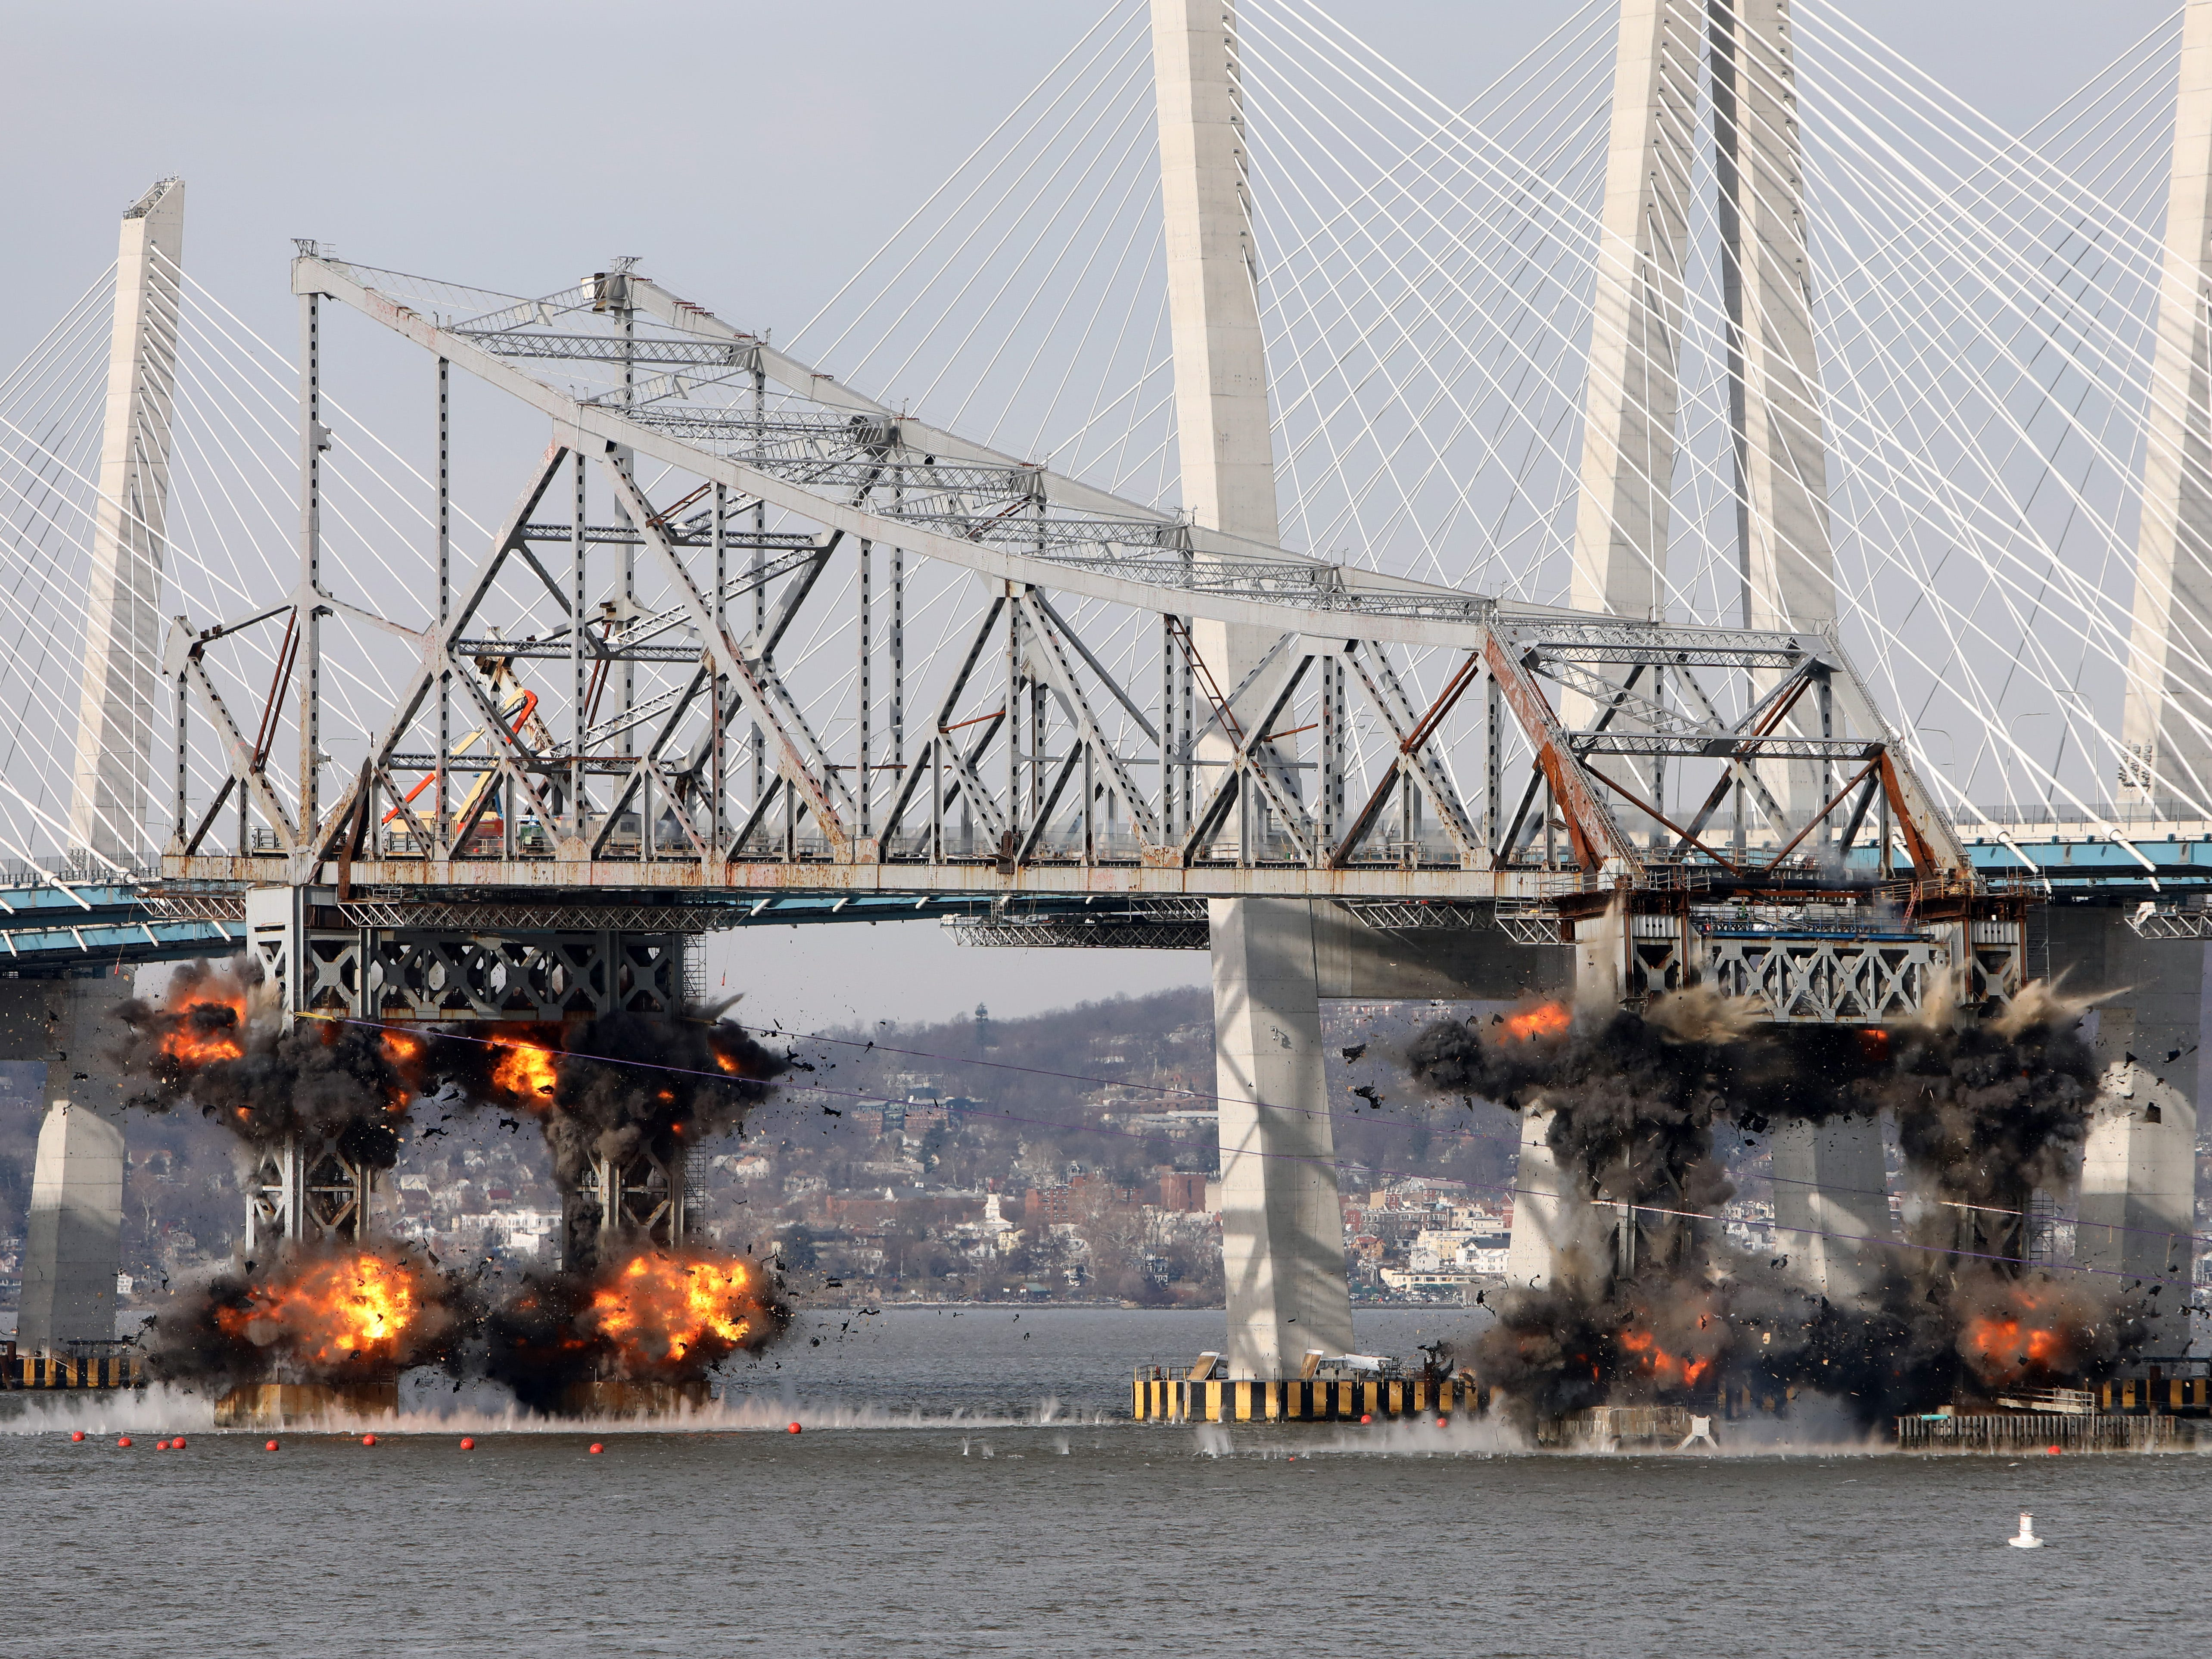 Tappan Zee Bridge demolition: Watch the replay